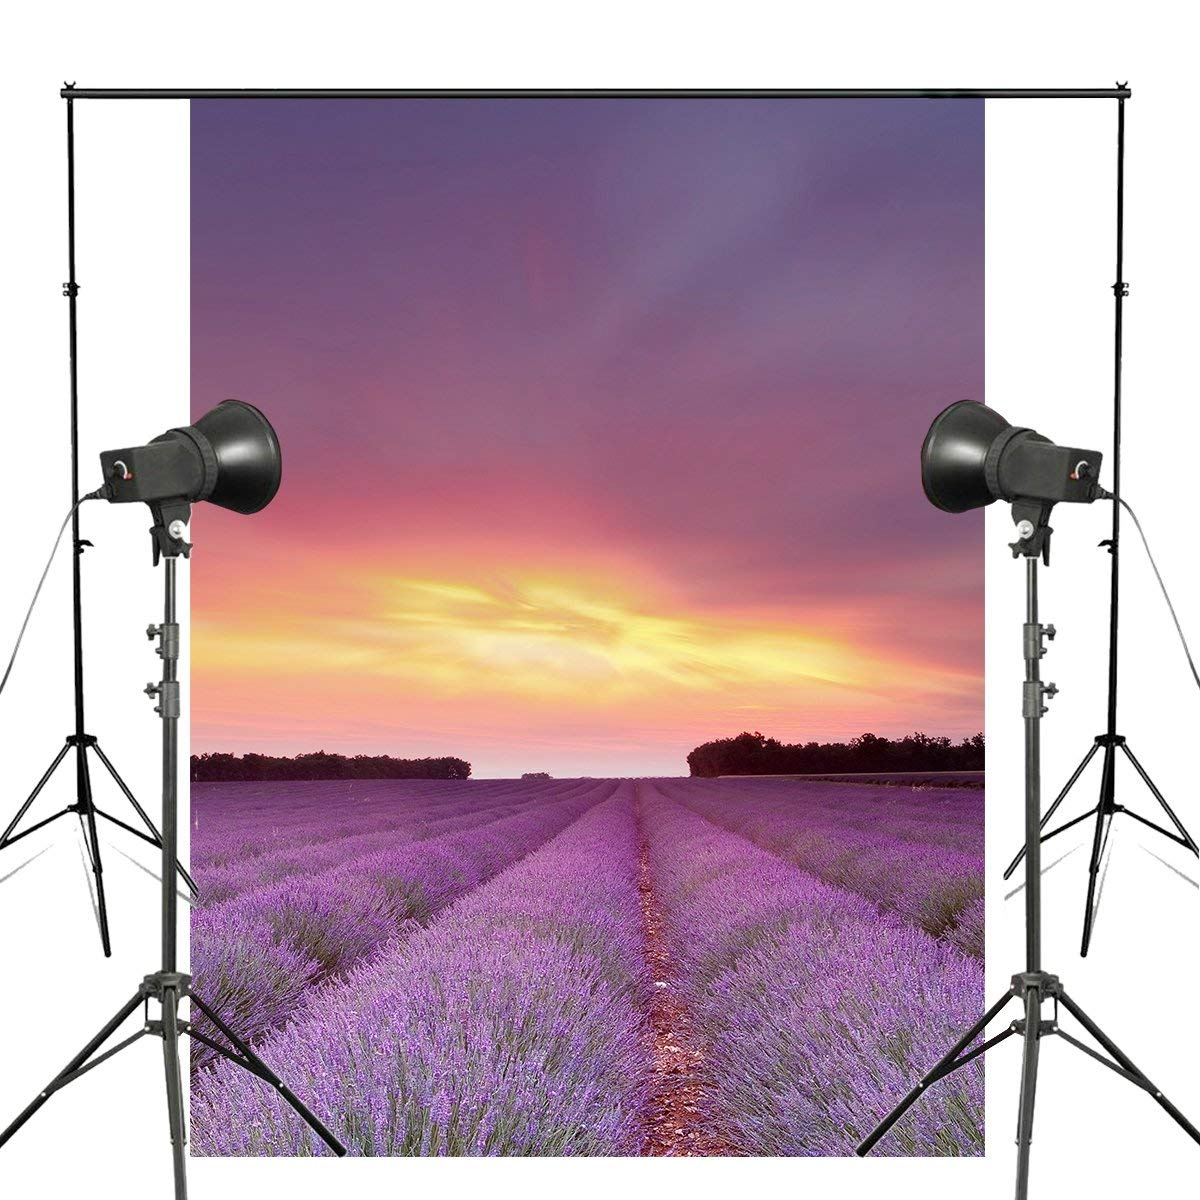 Lavandula Fields Sky Clouds Flowers Photography Background Sunset Sunrise Backdrop Studio Props Wall 150x220cmLavandula Fields Sky Clouds Flowers Photography Background Sunset Sunrise Backdrop Studio Props Wall 150x220cm